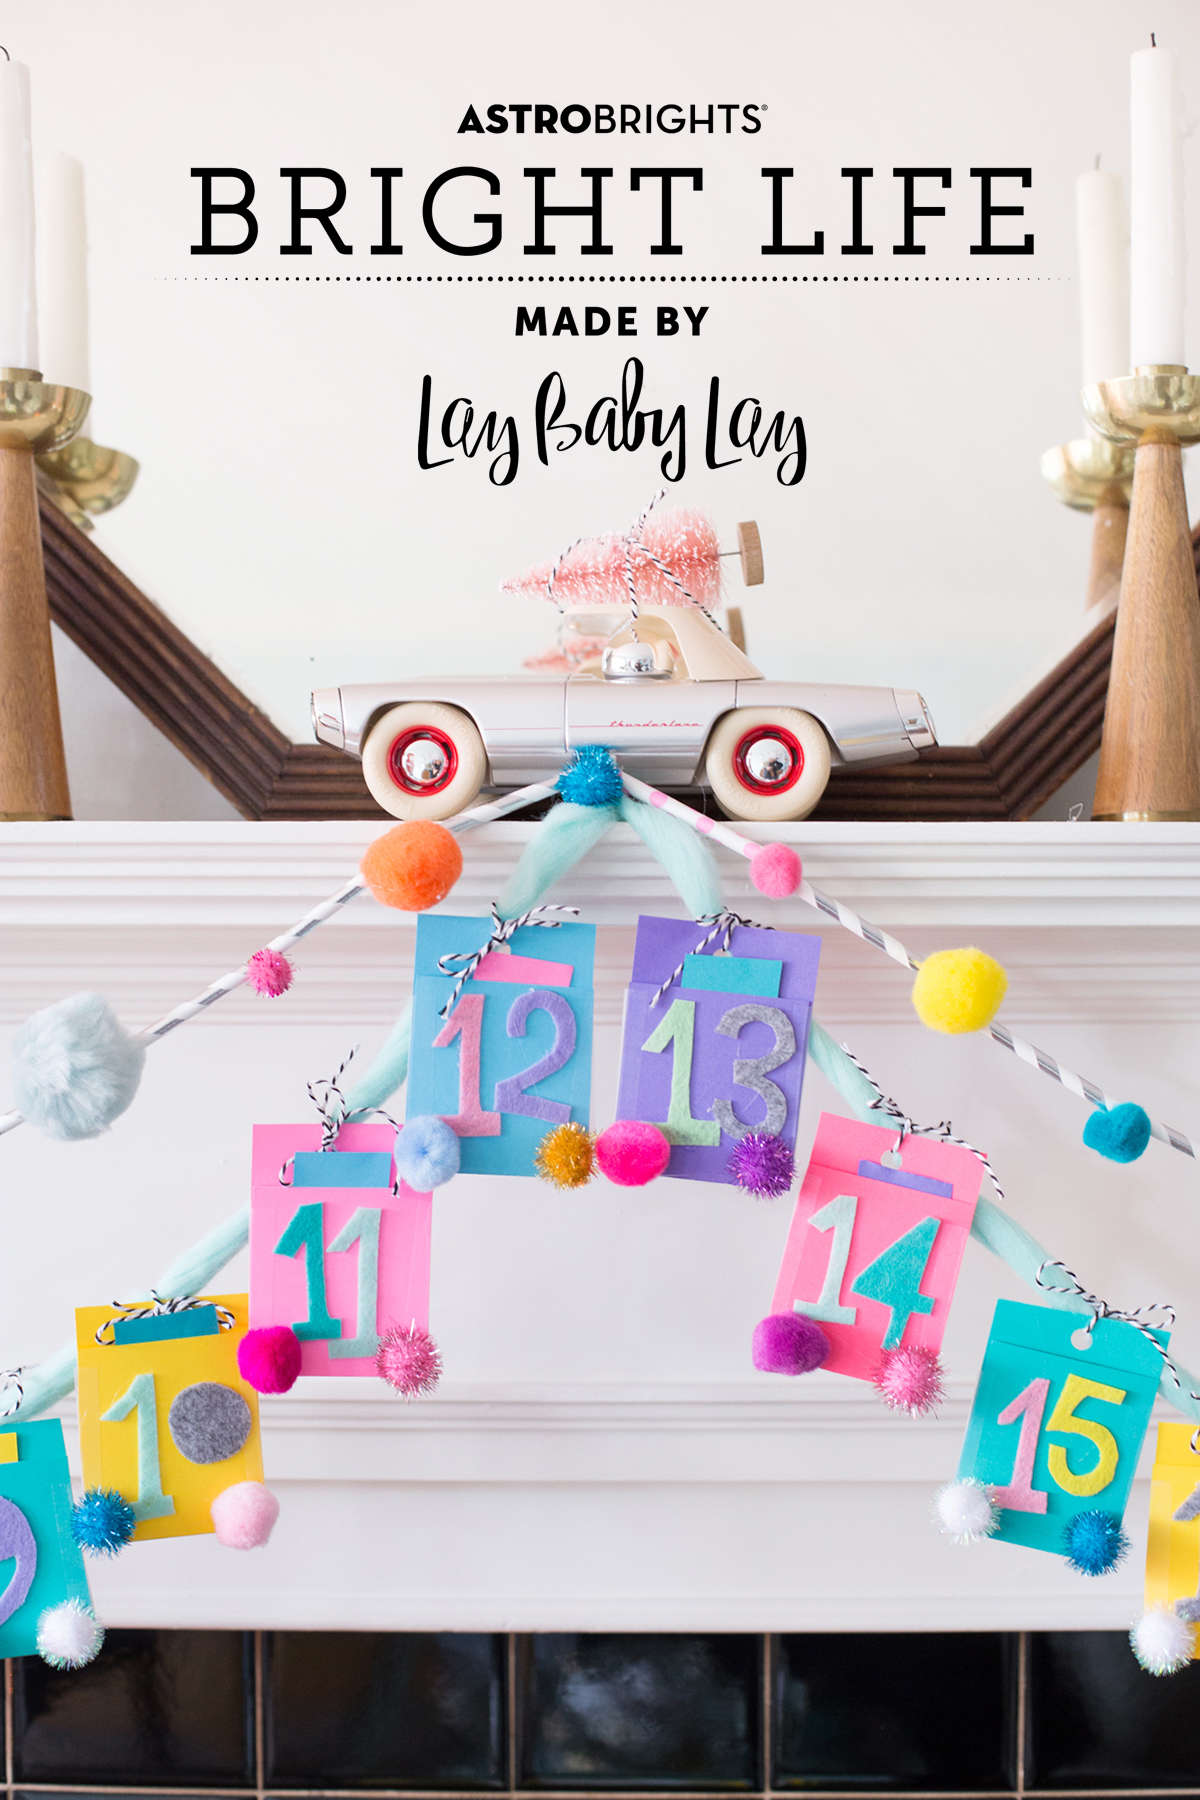 christmas-advent countdown - Lay Baby Lay - Astrobtrights - 09